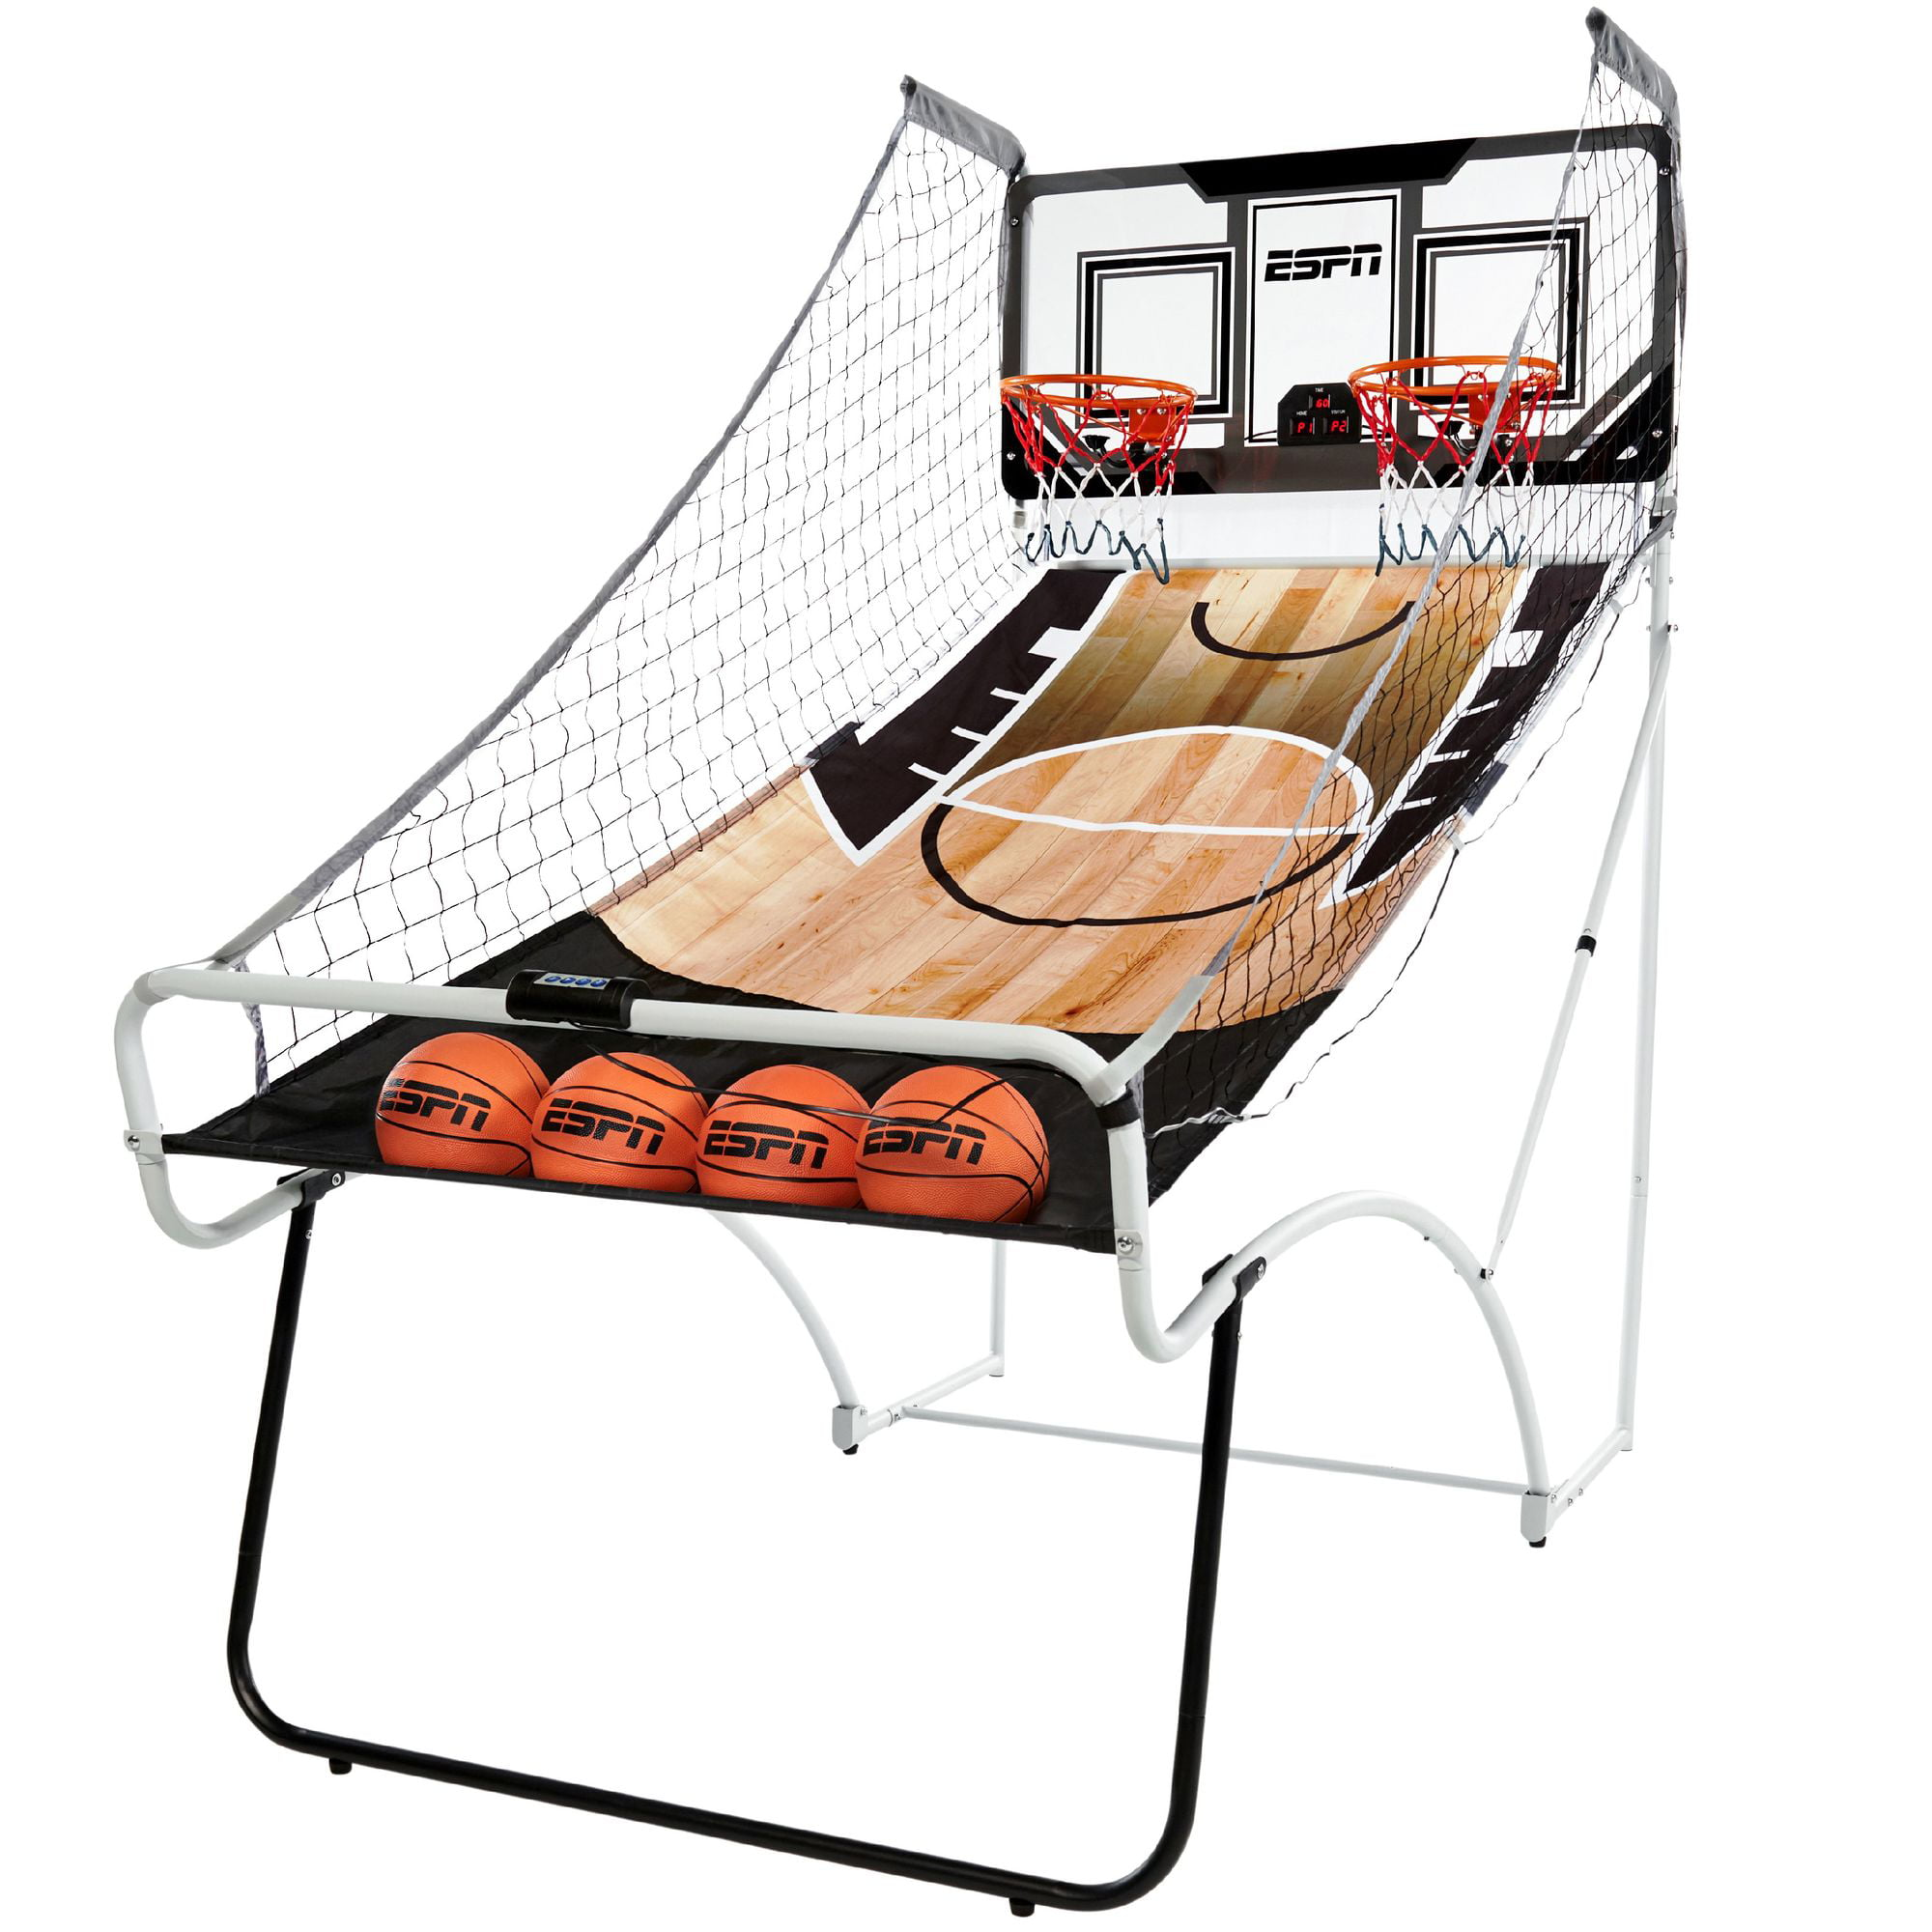 ESPN EZ-FOLD 2-Player Arcade Basketball Game with Authentic PC Backboard and LED Scoring, 4 rubber... by Medal Sports